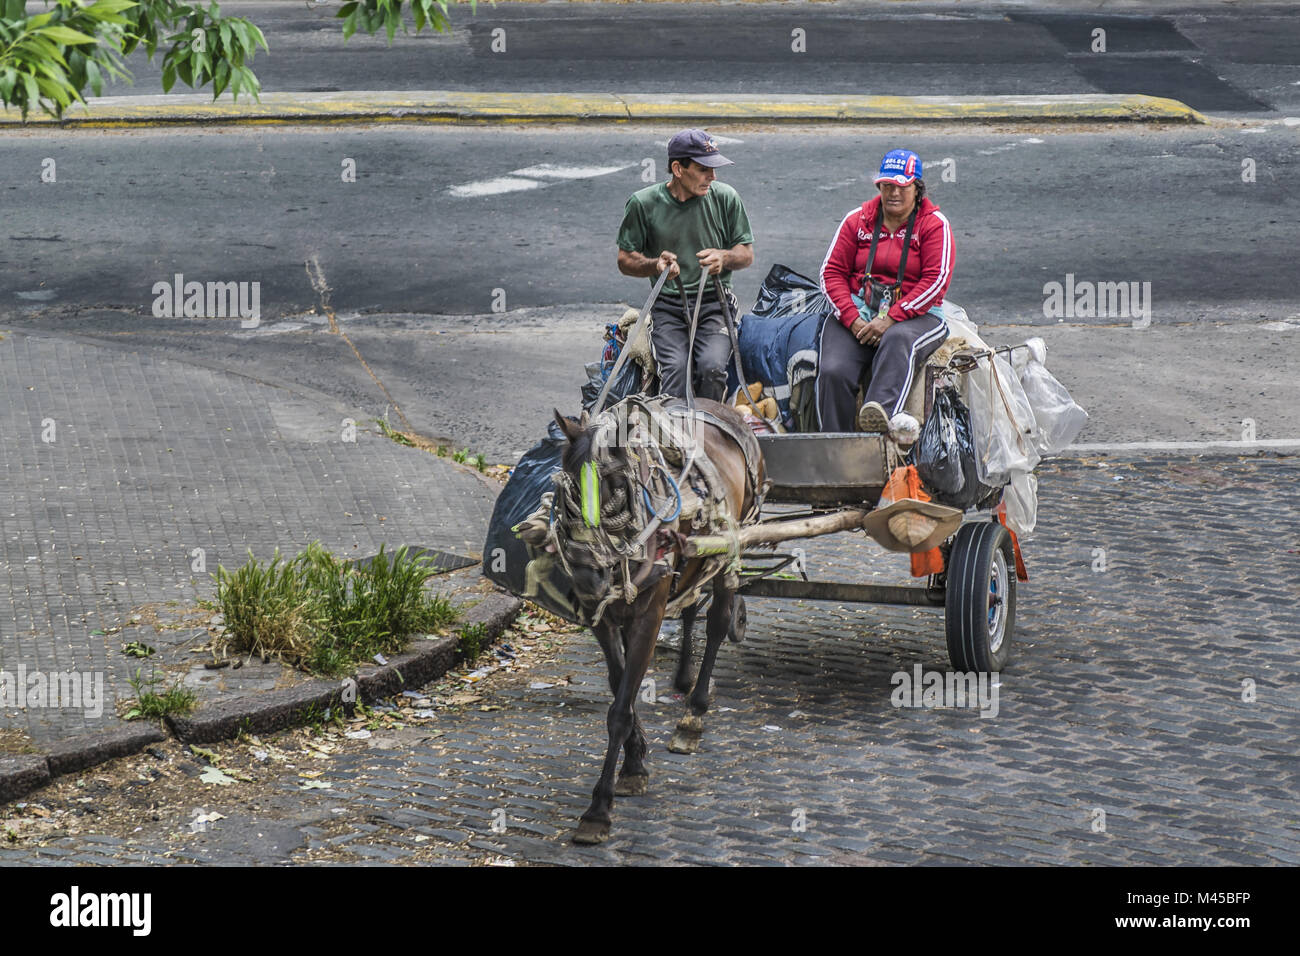 Couple of Scavengers in Carriage High Angle View - Stock Image